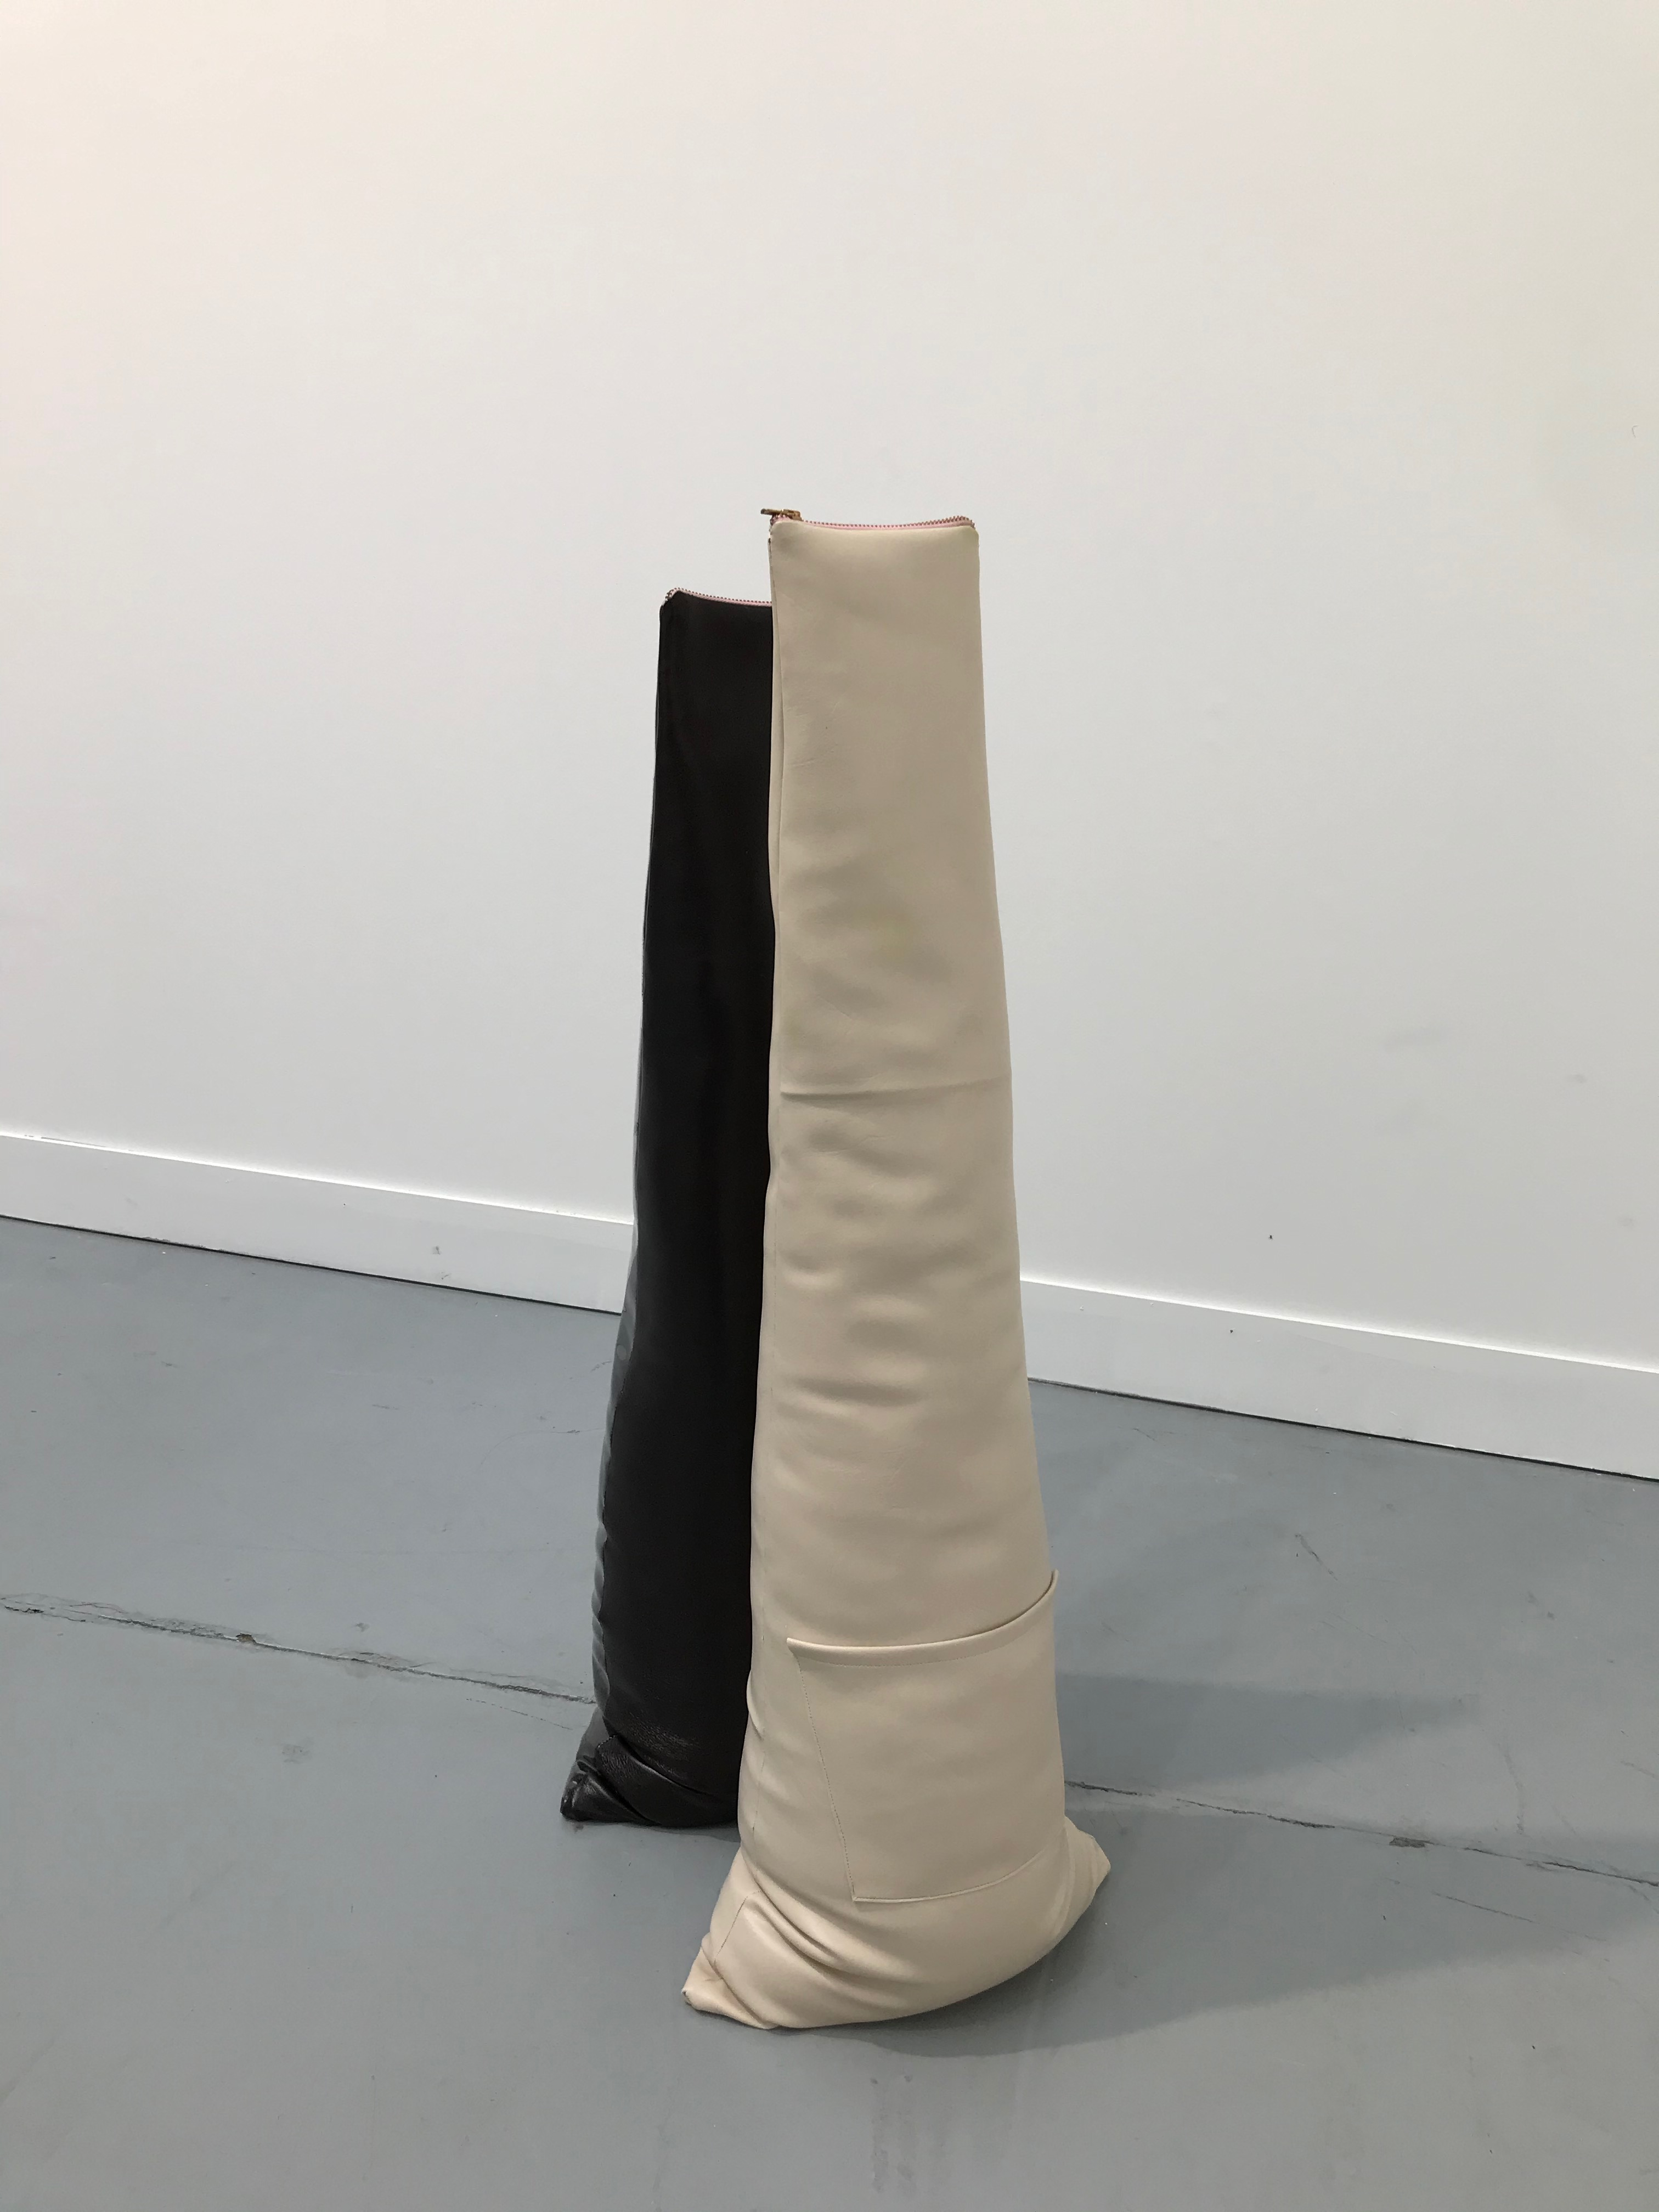 work by Cameron Claybourne shown by Simone Subal